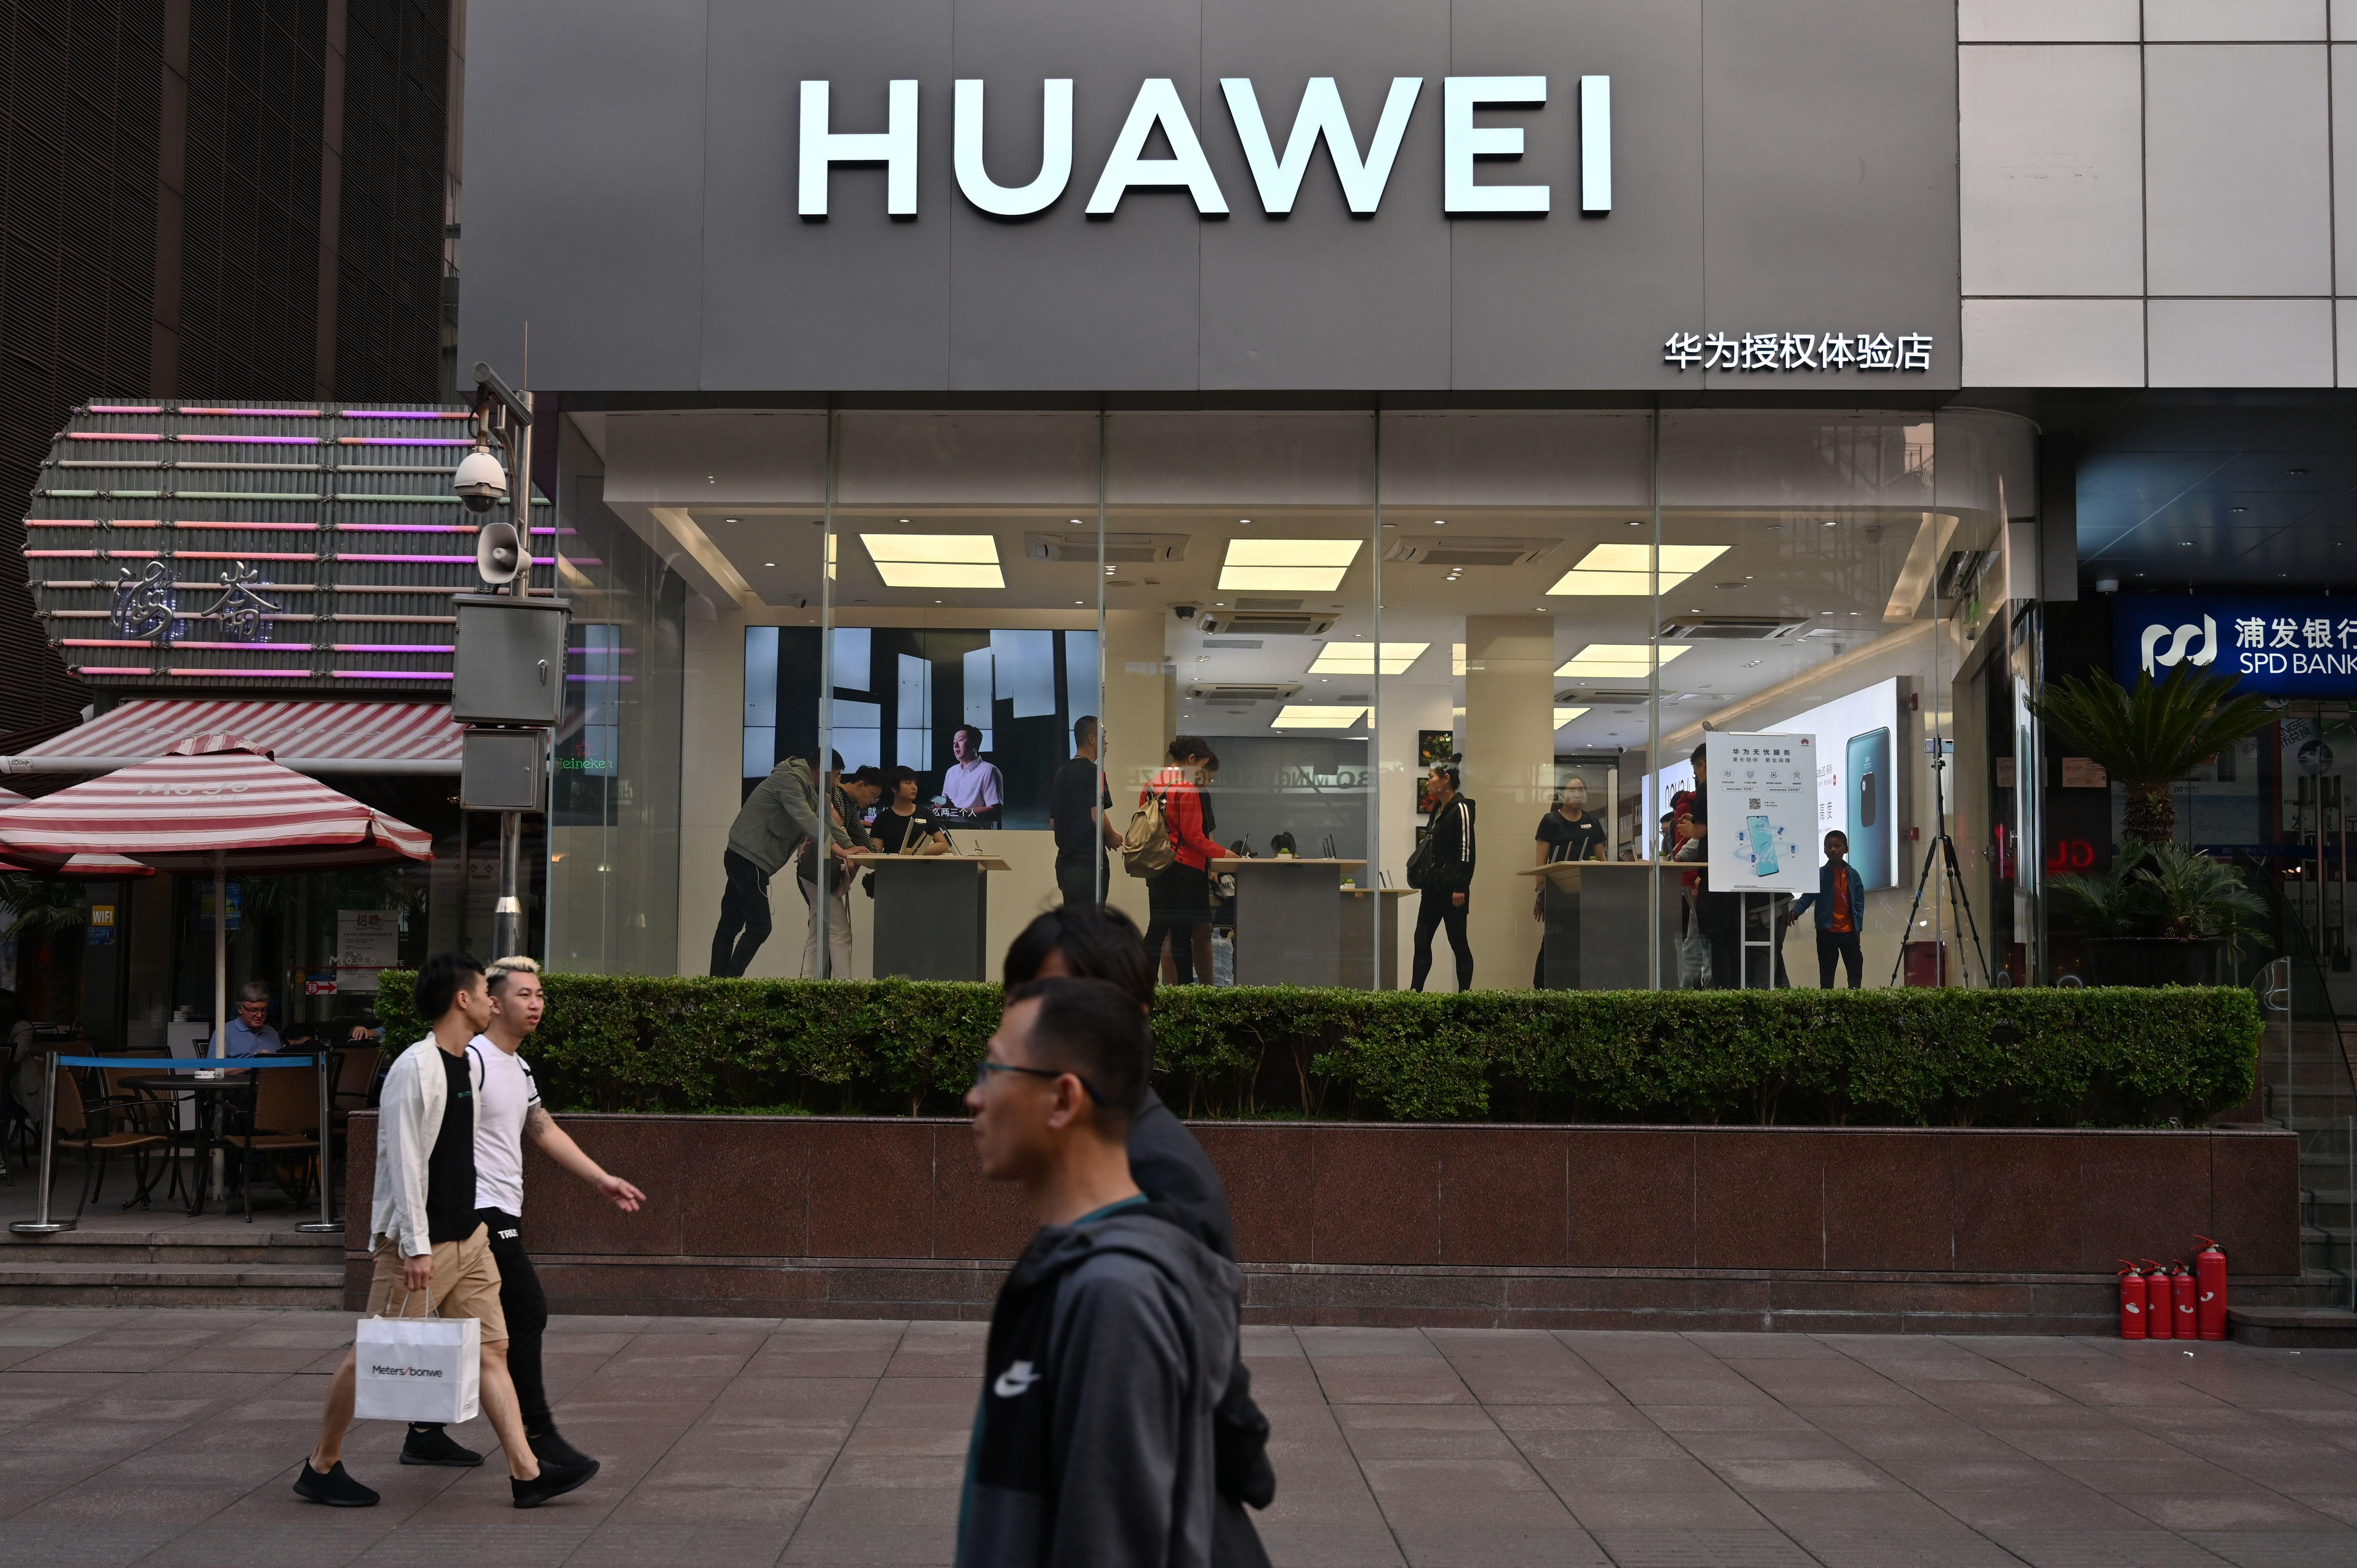 People walk past a Huawei store in Shanghai on May 10, 2019. (Photo by HECTOR RETAMAL / AFP)        (Photo credit should read HECTOR RETAMAL/AFP/Getty Images)